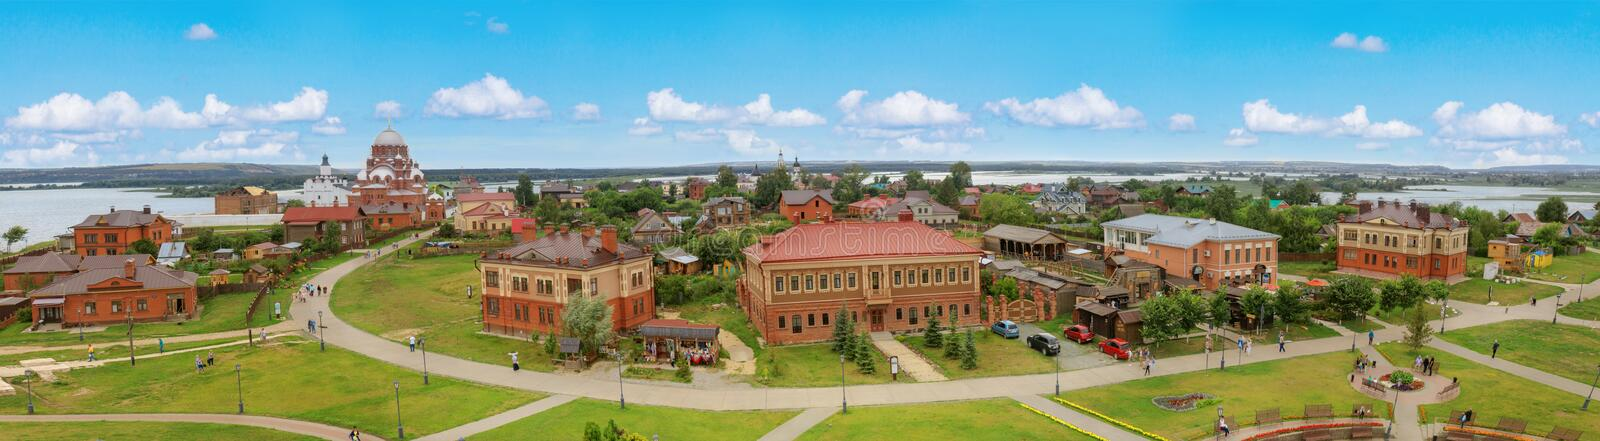 Picturesque aerial view of Sviyazhsk, Tatarstan royalty free stock image